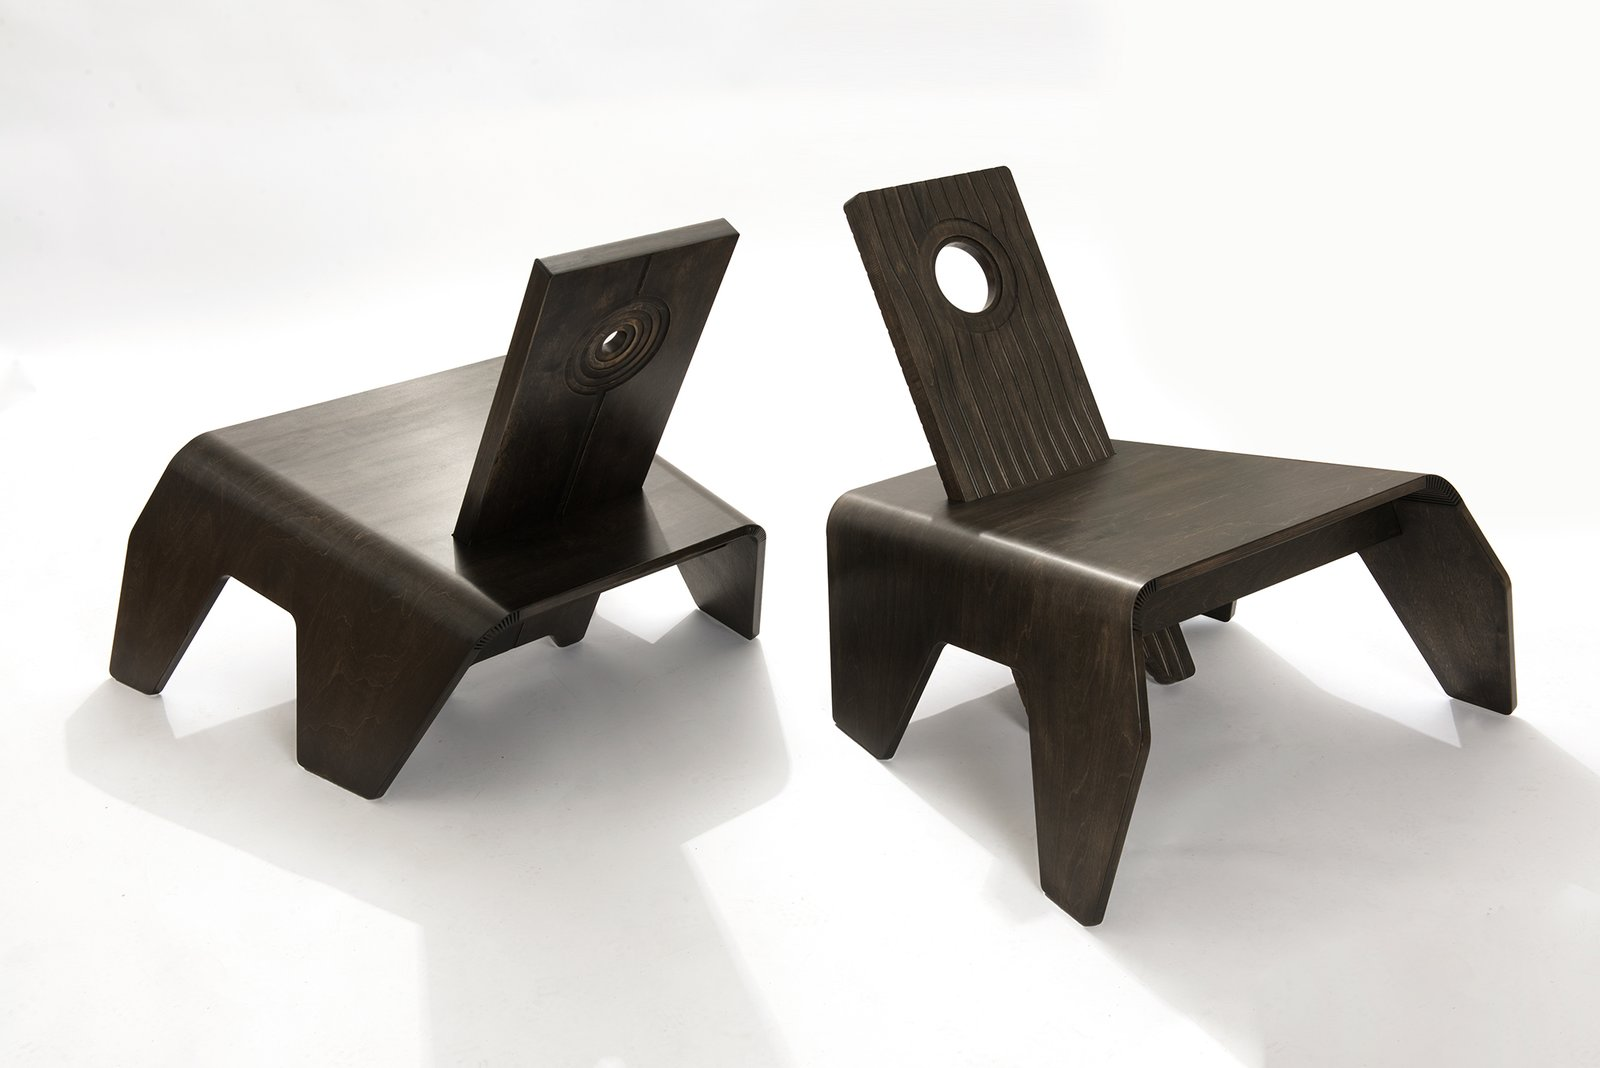 Photo 5 of 5 in African Designs Go Mainstream: Jomo Tariku Showcases The Birth Chair II at Dubai Design Week